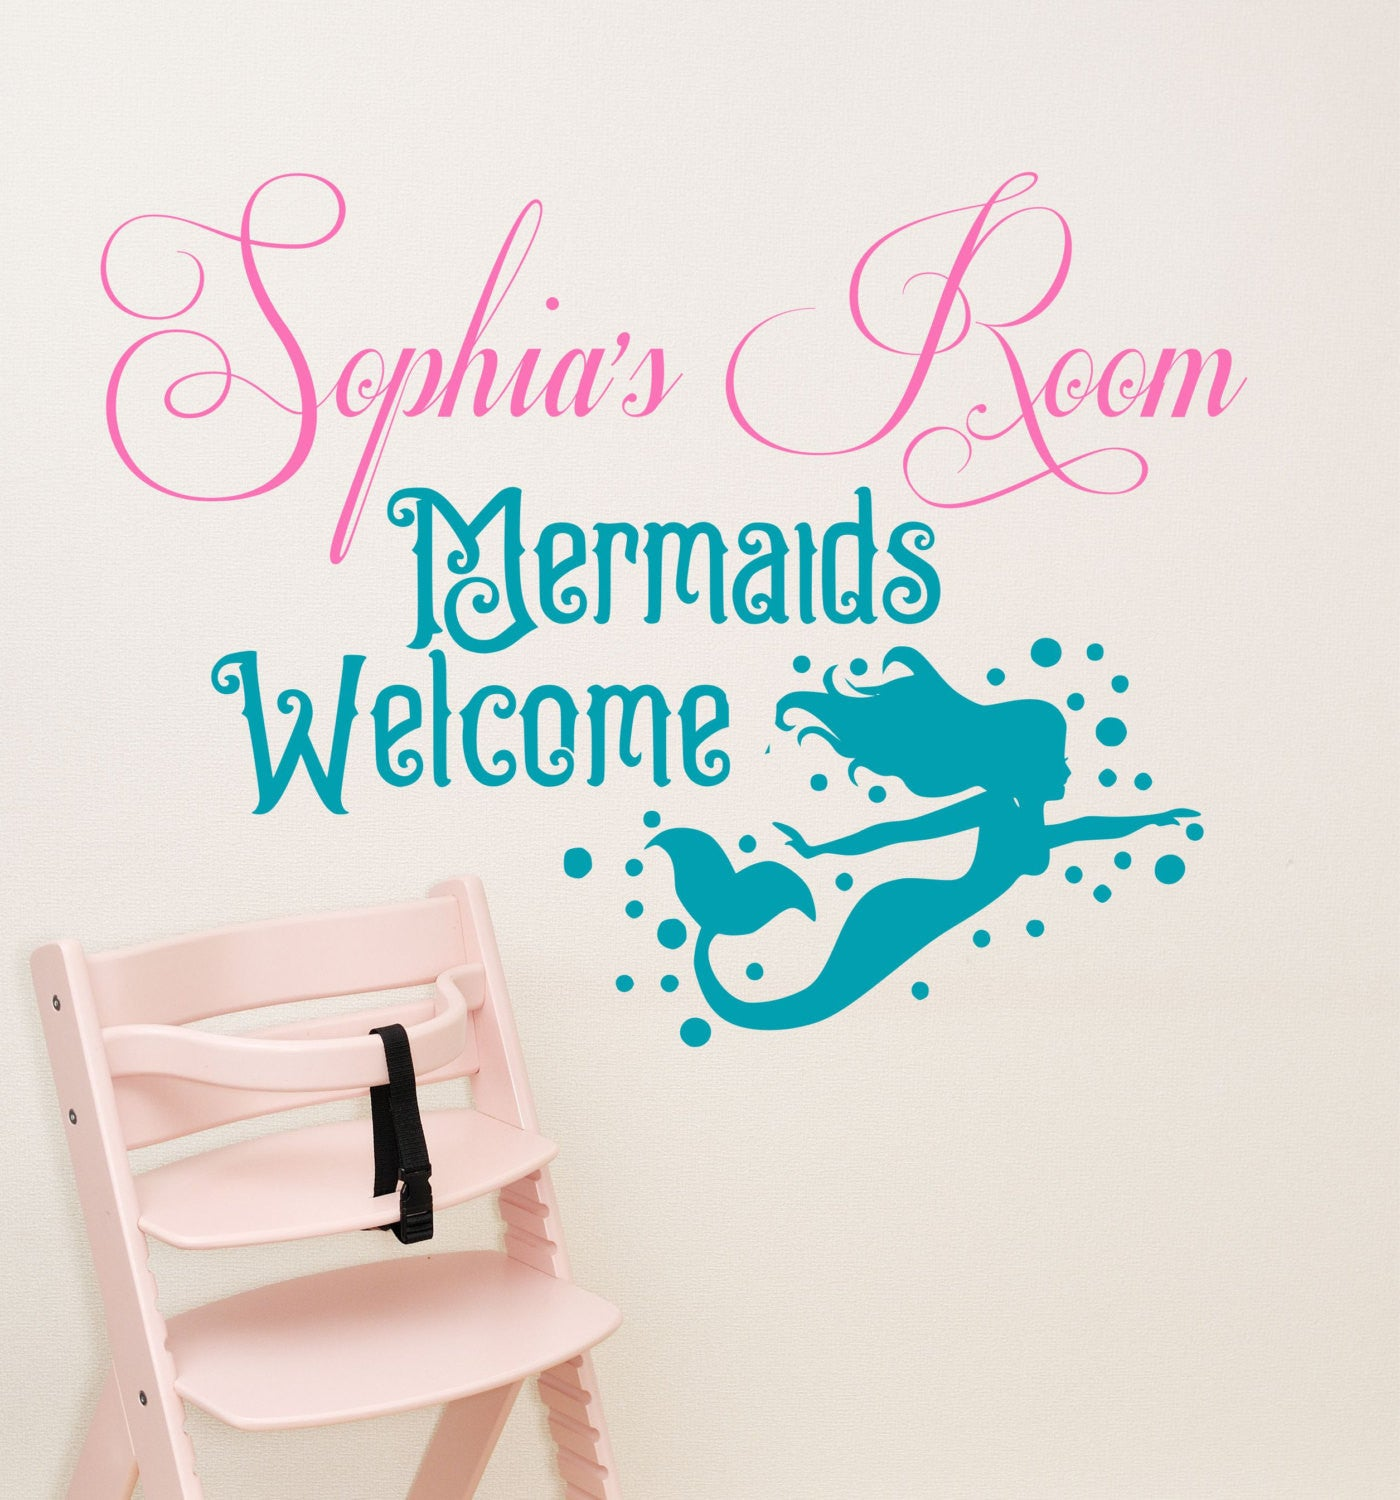 Mermaid decal by decor designs decals girls mermaid decal girls wal mermaid decal by decor designs decals girls mermaid decal girls wall decal amipublicfo Images